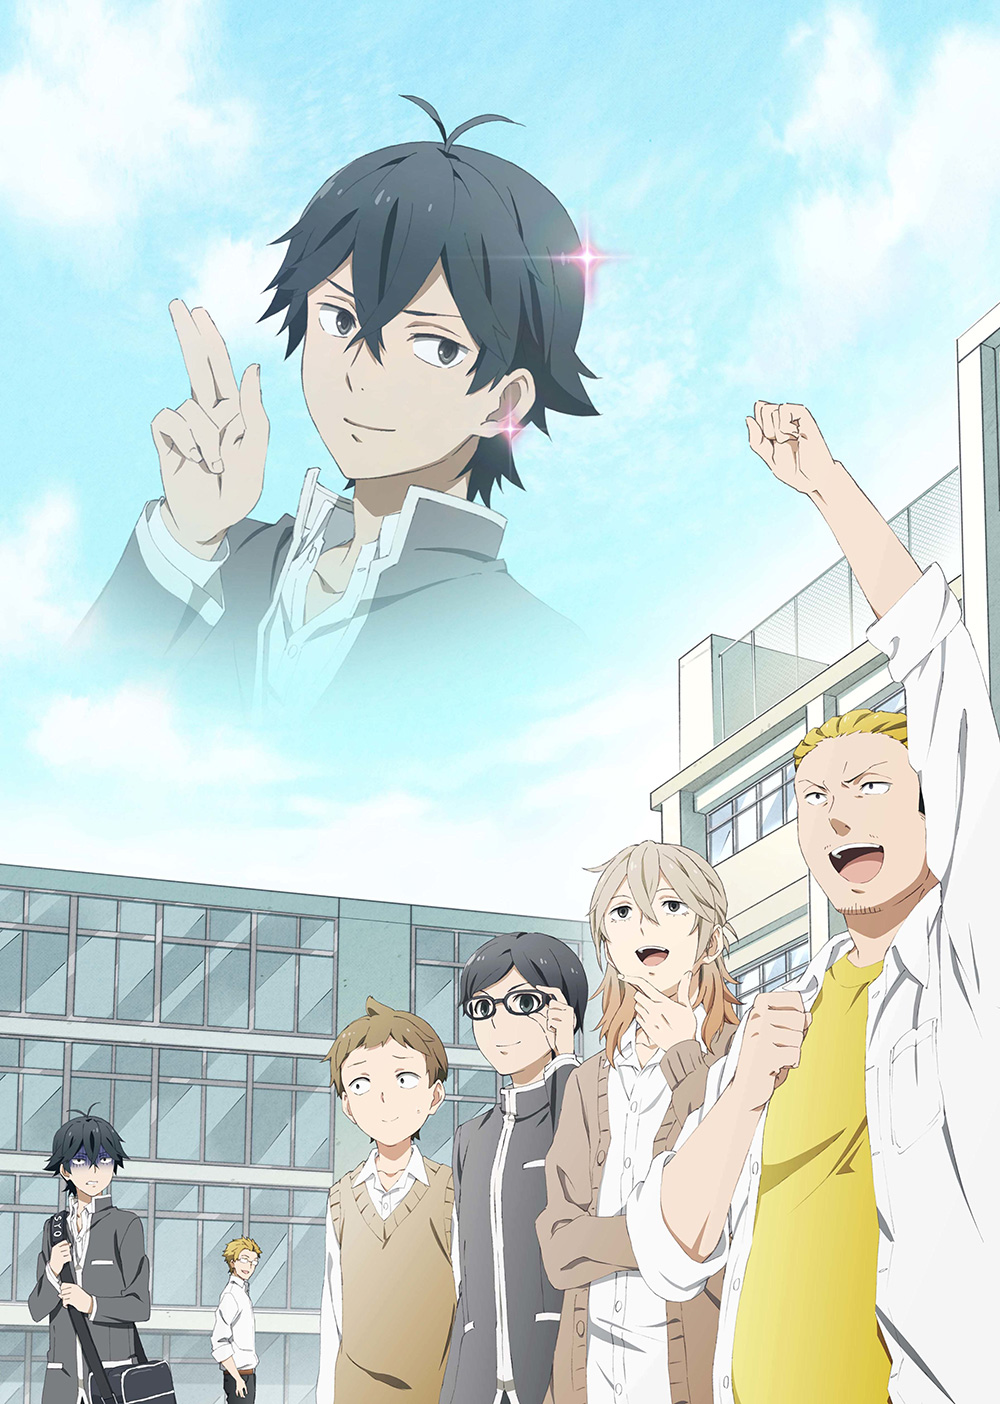 Handa-kun-Anime-Visual-01